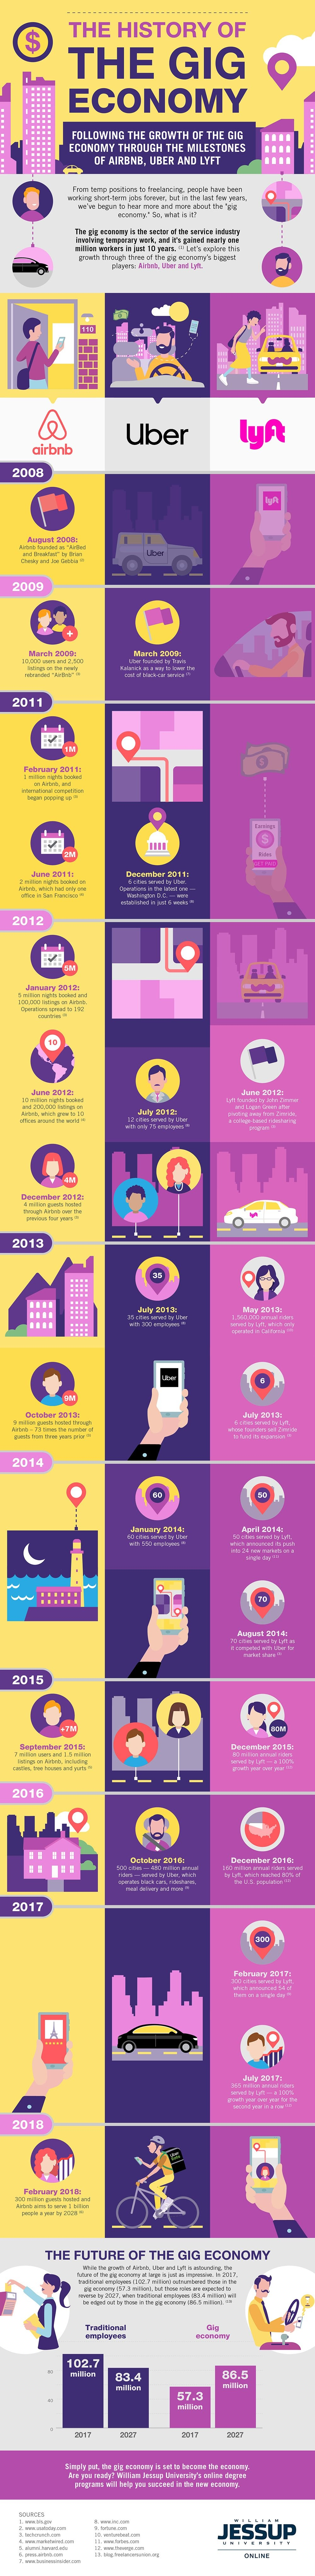 The History of The Gig Economy